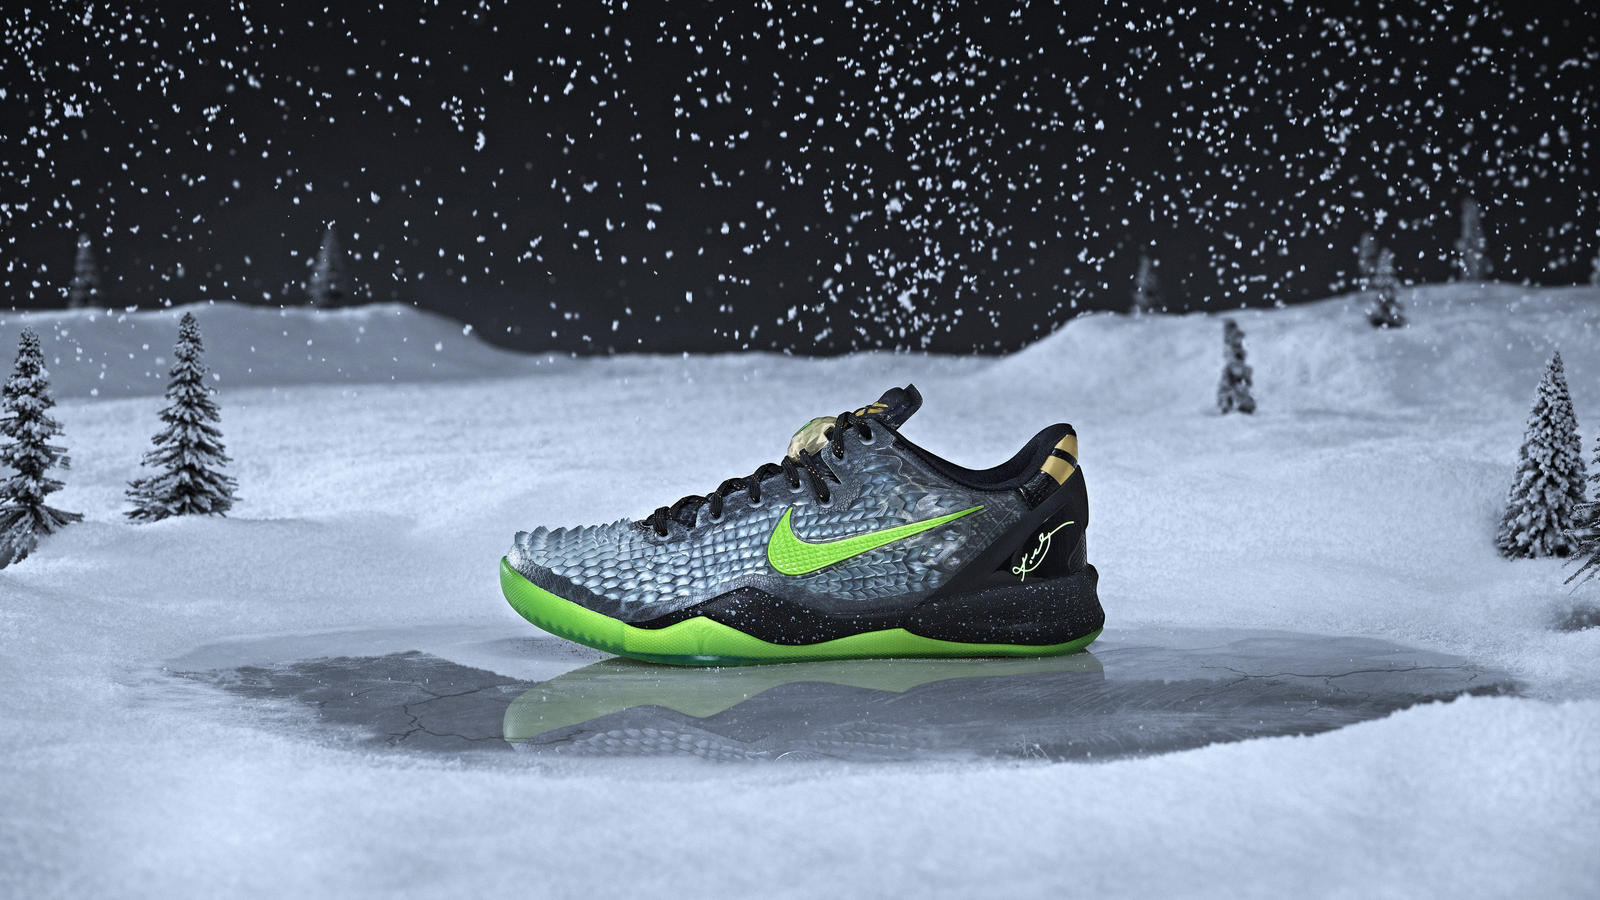 83c0ce49492e ... closeout nike basketball unwraps its annual set of festive signature  footwear d4be0 259c4